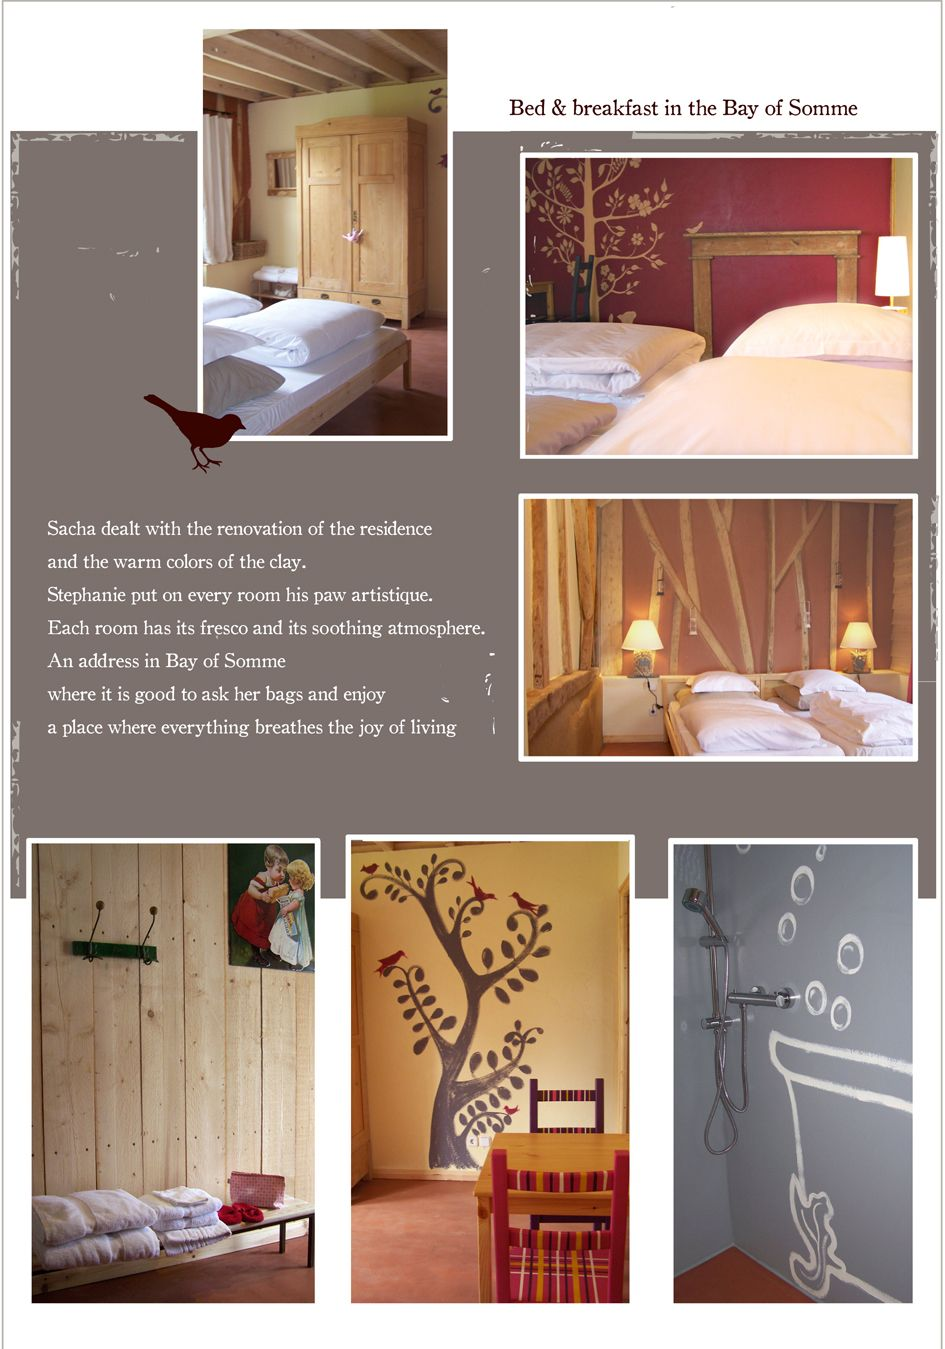 Chambre D Hotes En Baie De Somme Warm Colors Bed And Breakfast Home Decor